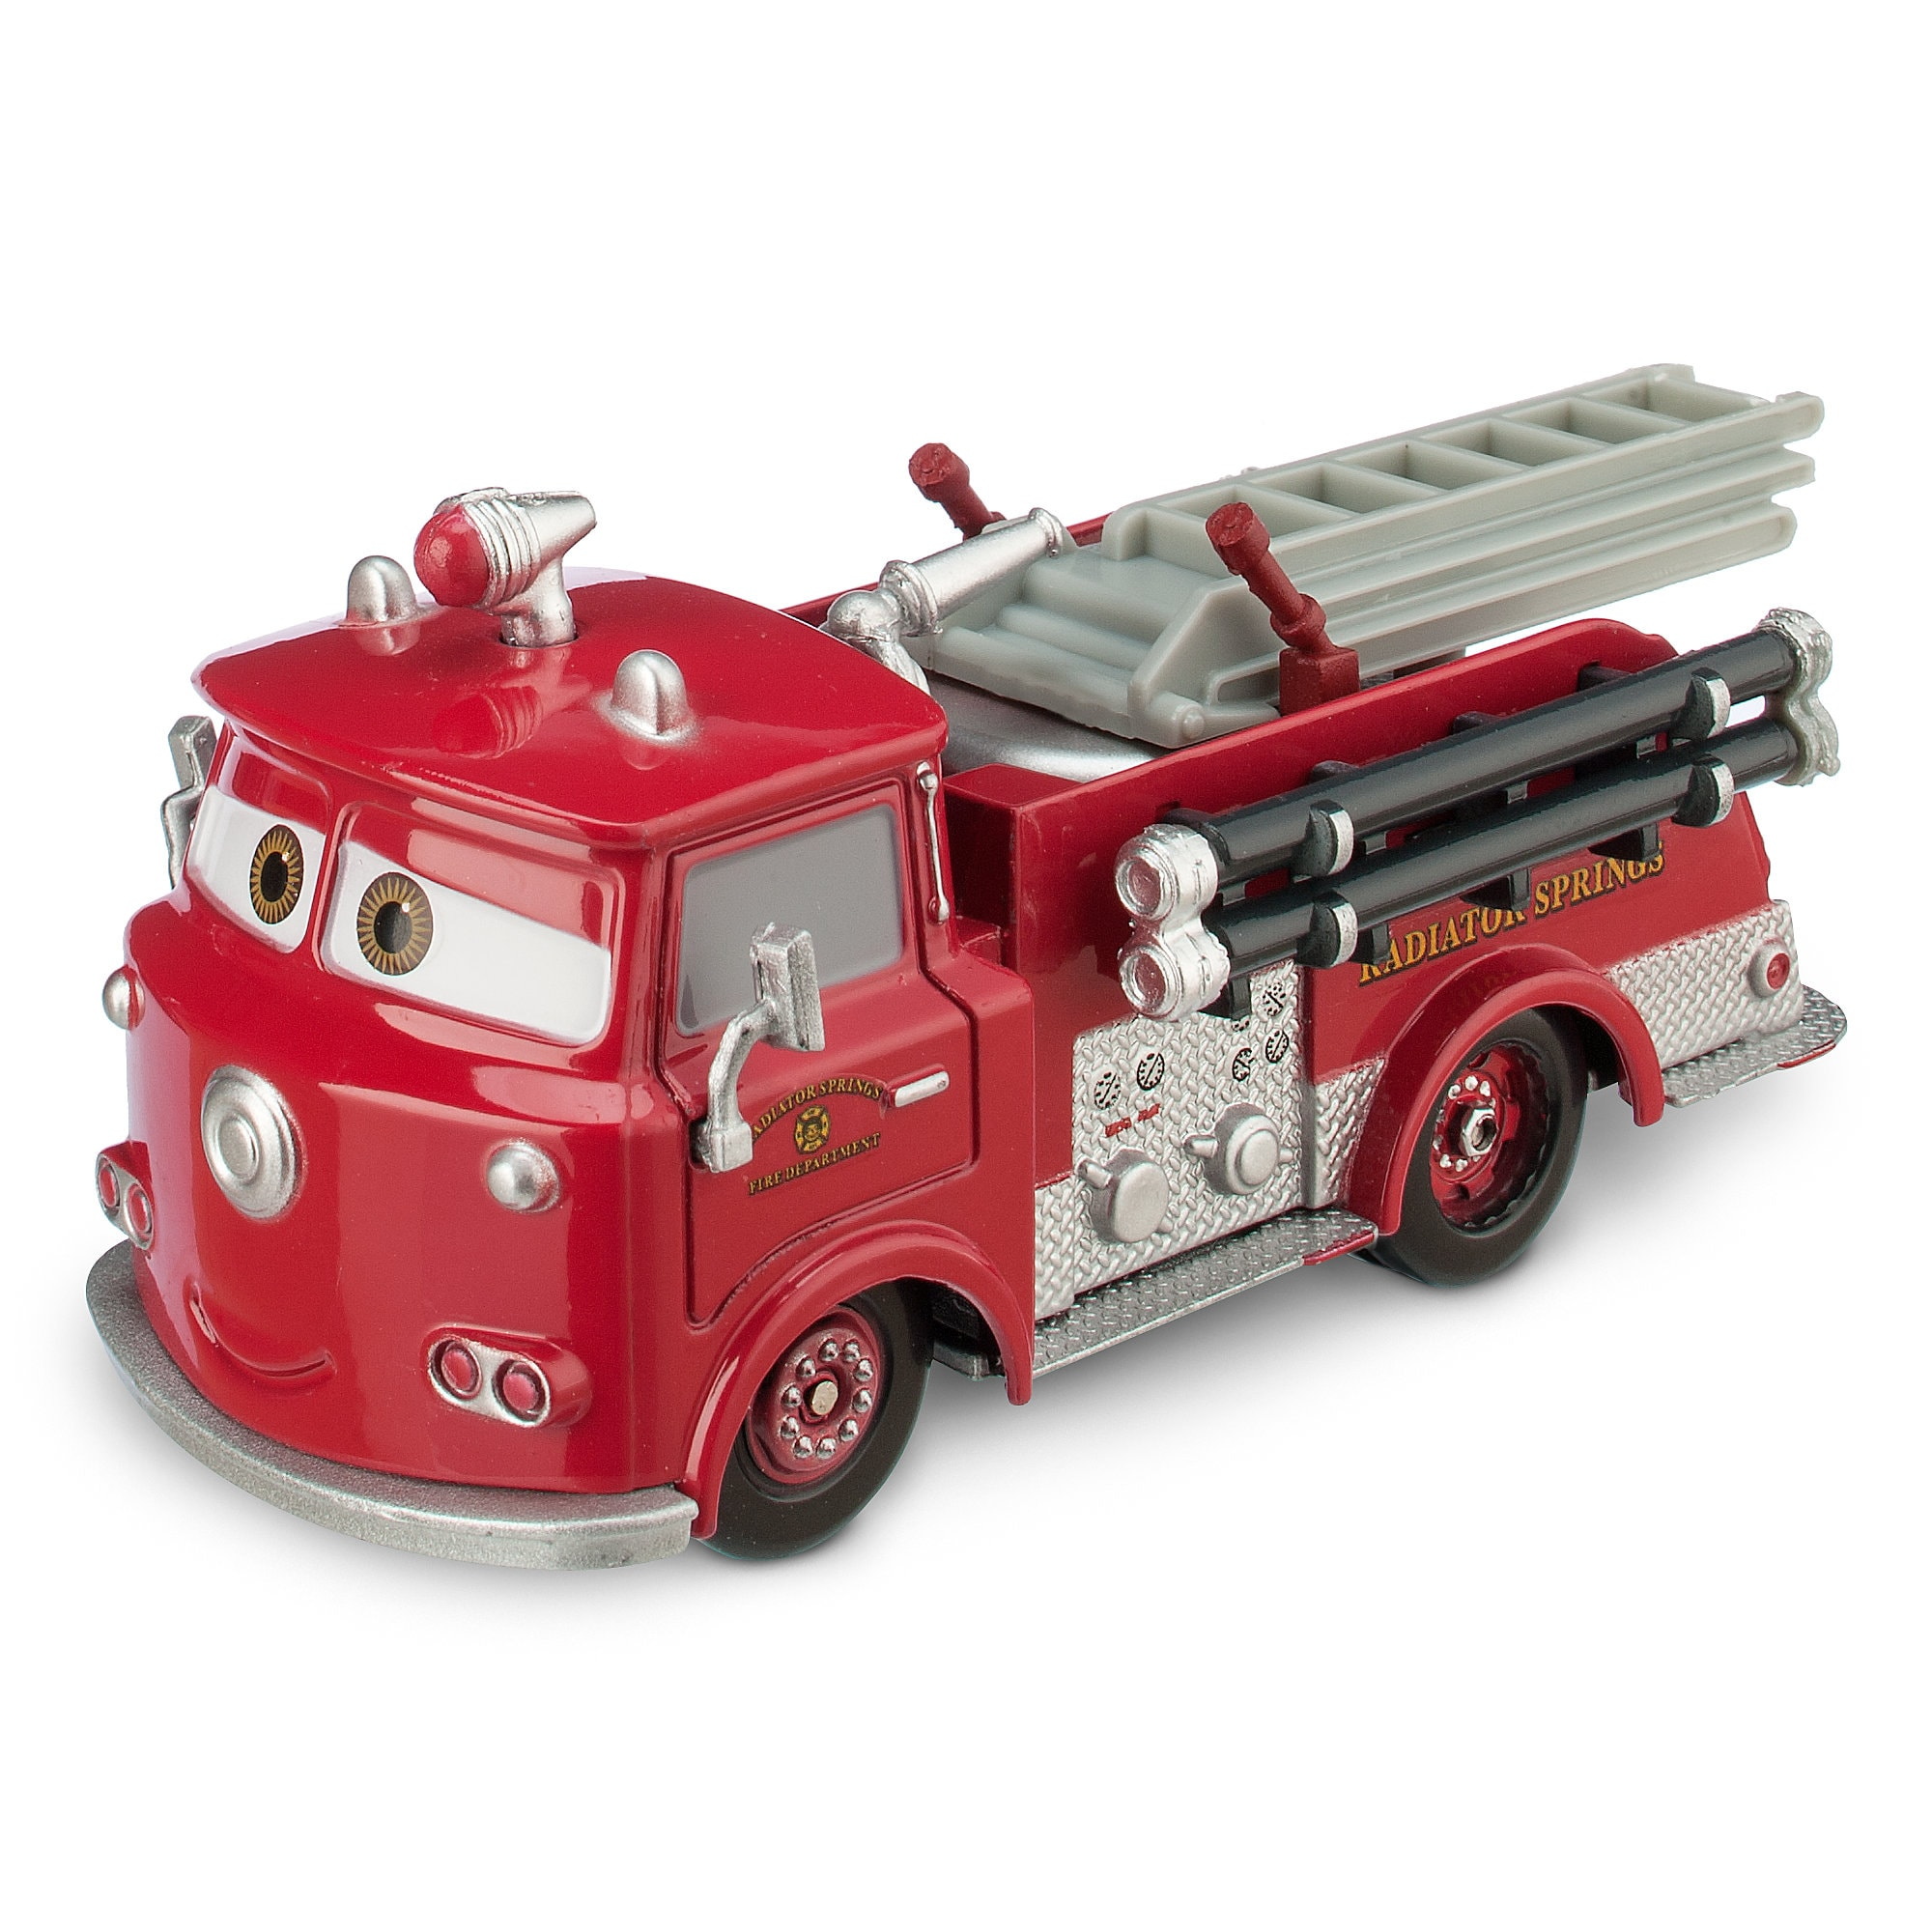 Red Die Cast Fire Engine - Cars